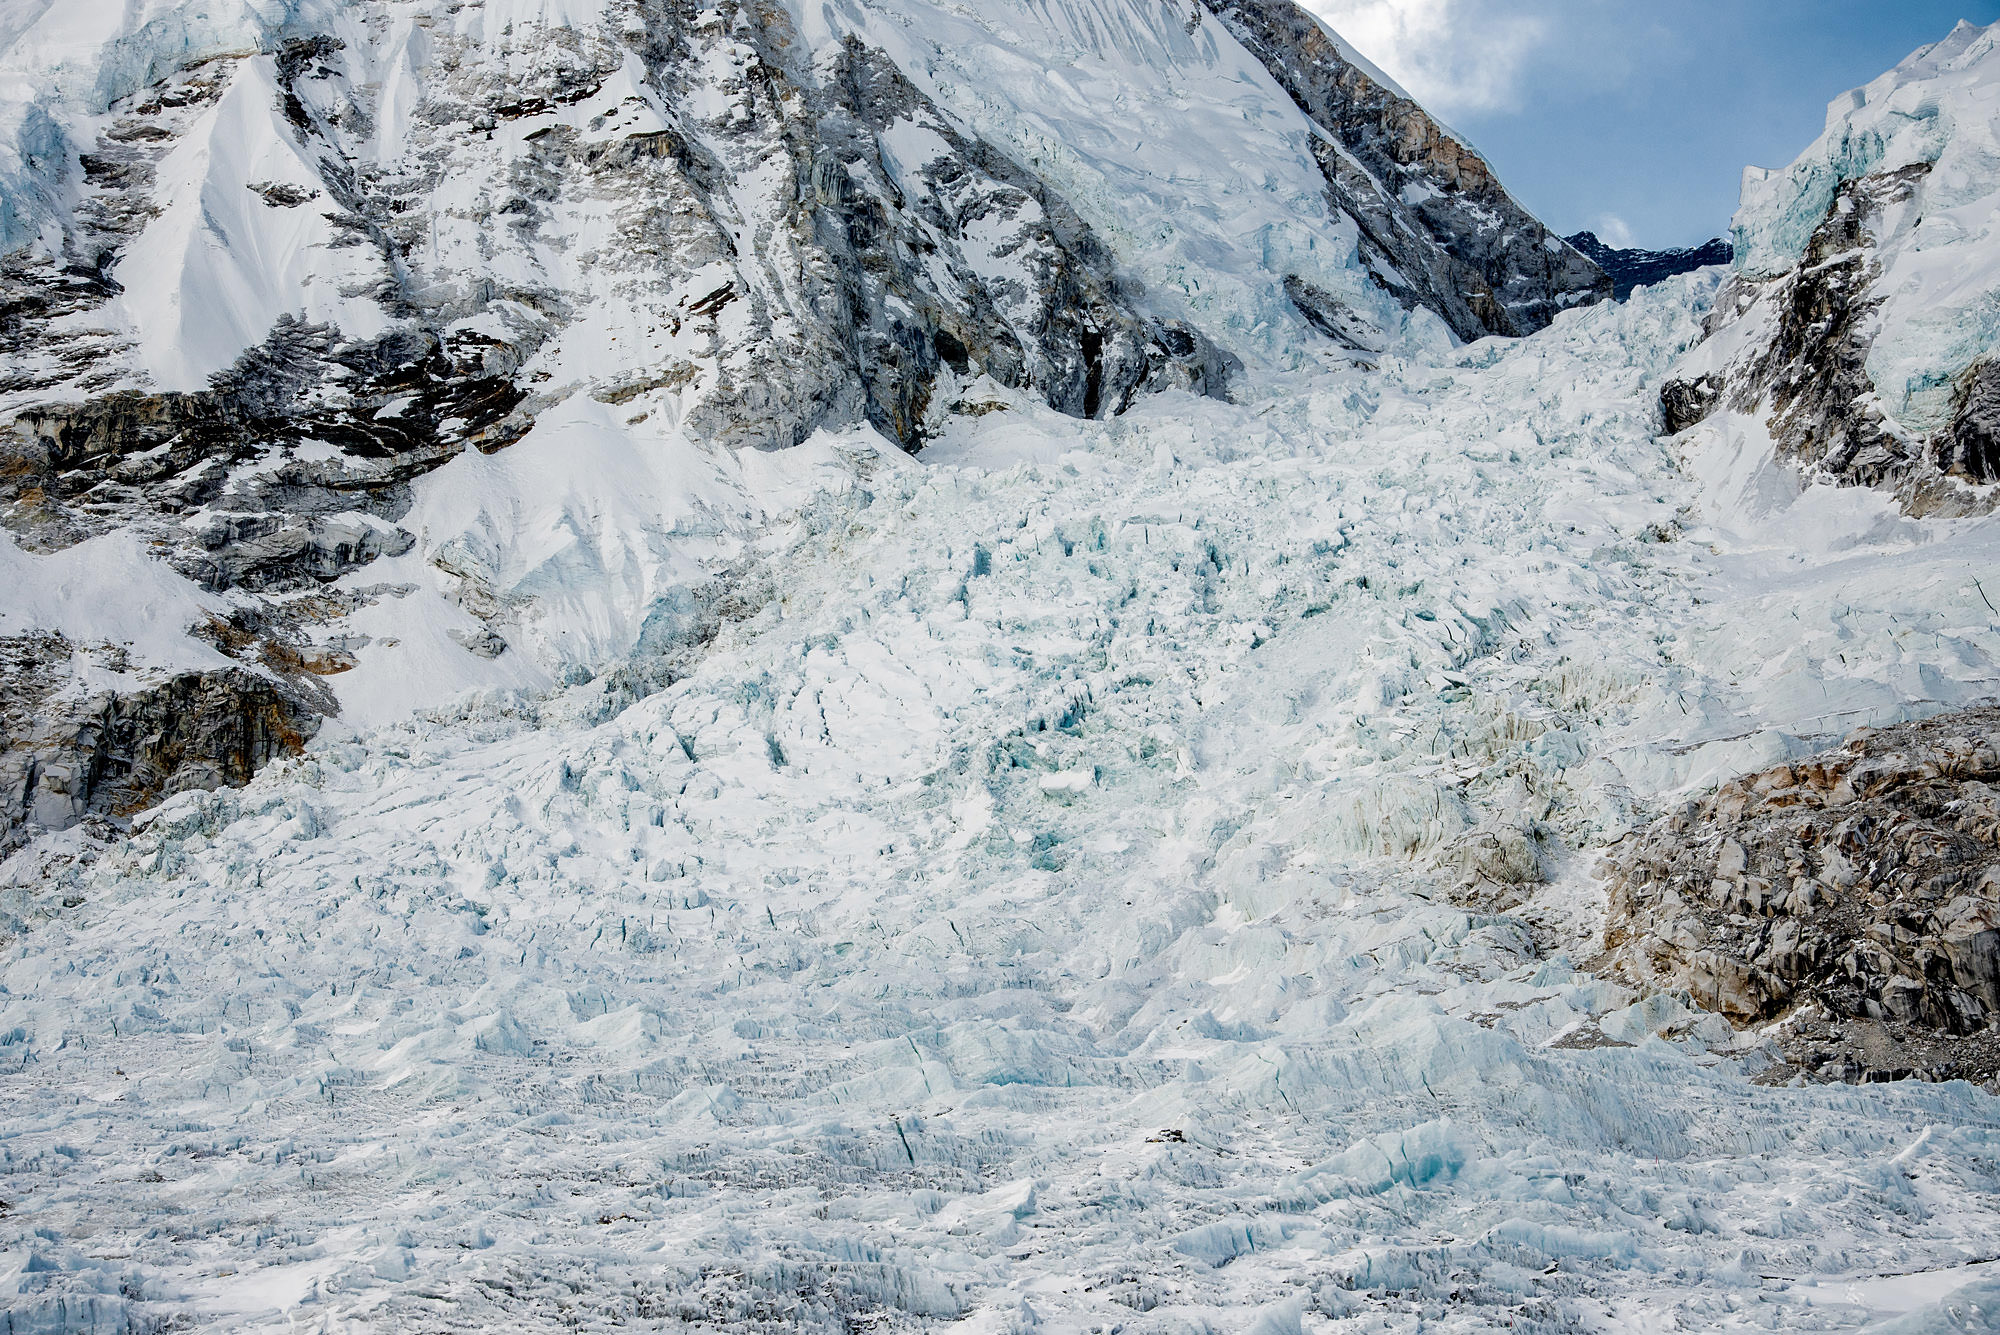 khumbu ice-fall on march 16, 2017